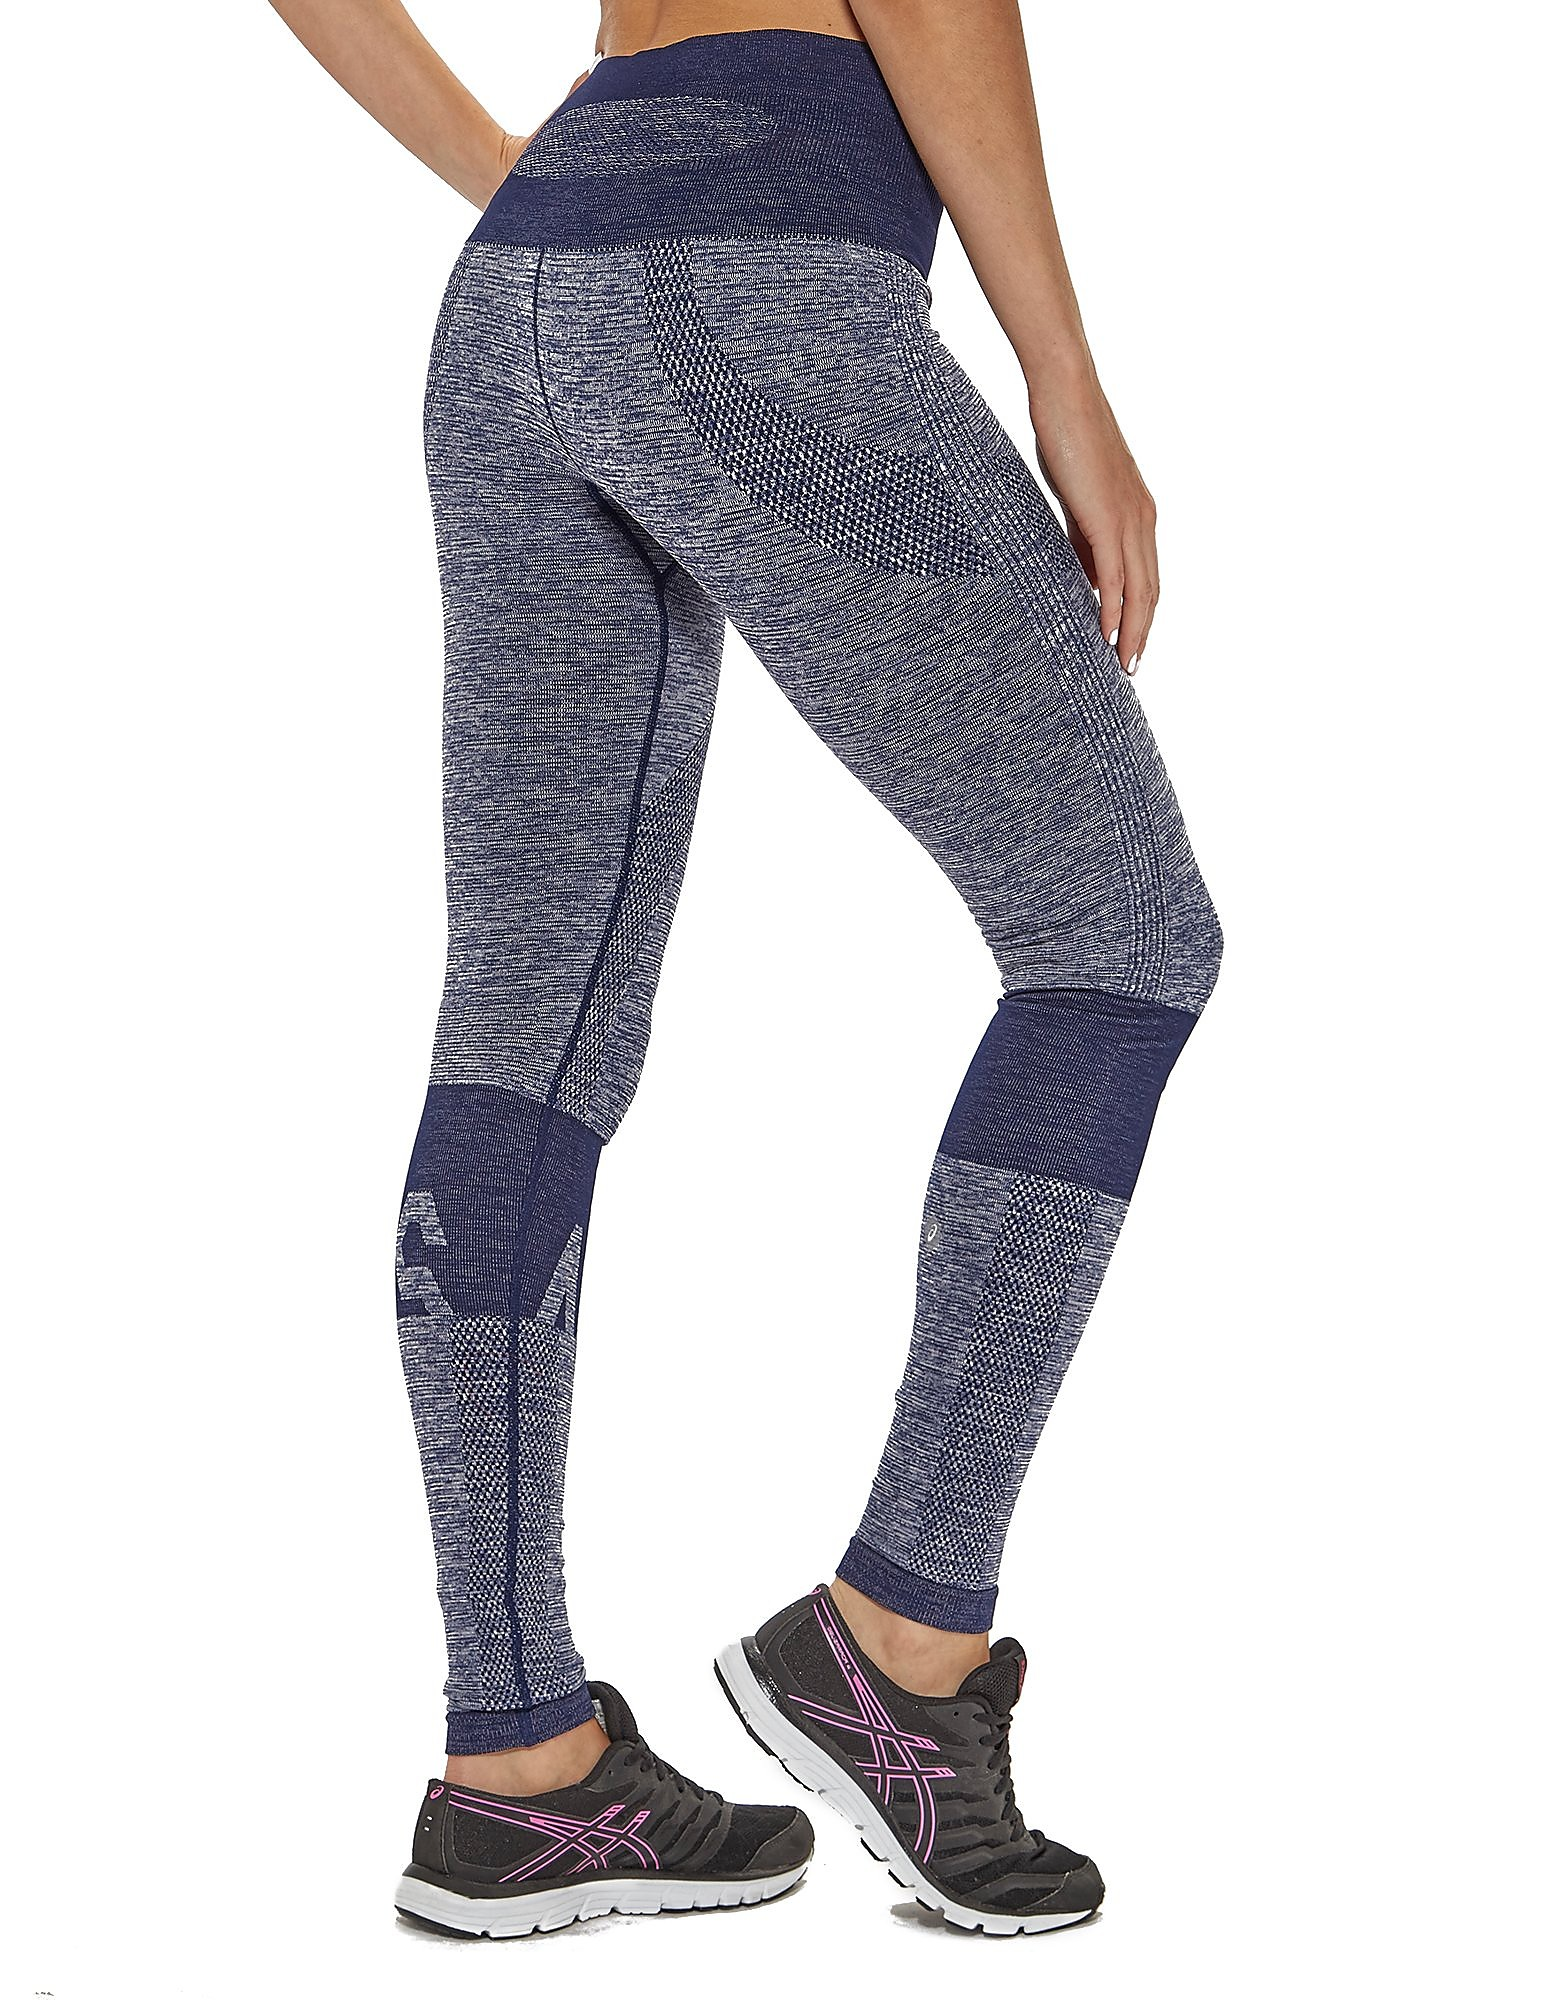 ASICS Seamless Women's Tights